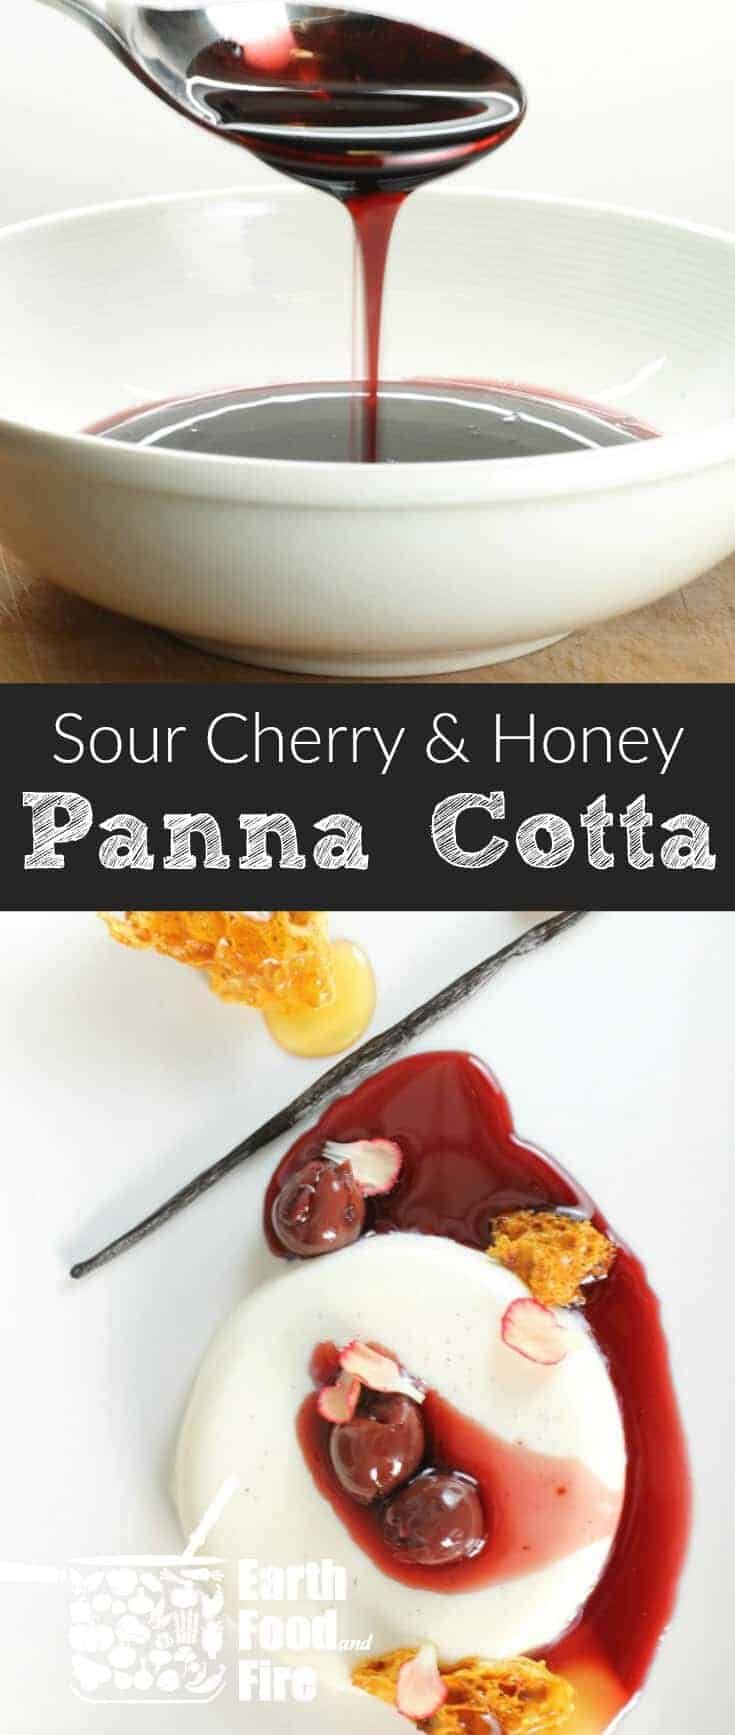 A surprisingly simple yet stunning dessert, this Honey Panna Cotta, garnished with cherries & sponge toffee is sure to impress any guest or date! #pannacotta #holiday #dessert #easydessert #cherry #sourcherry #honey